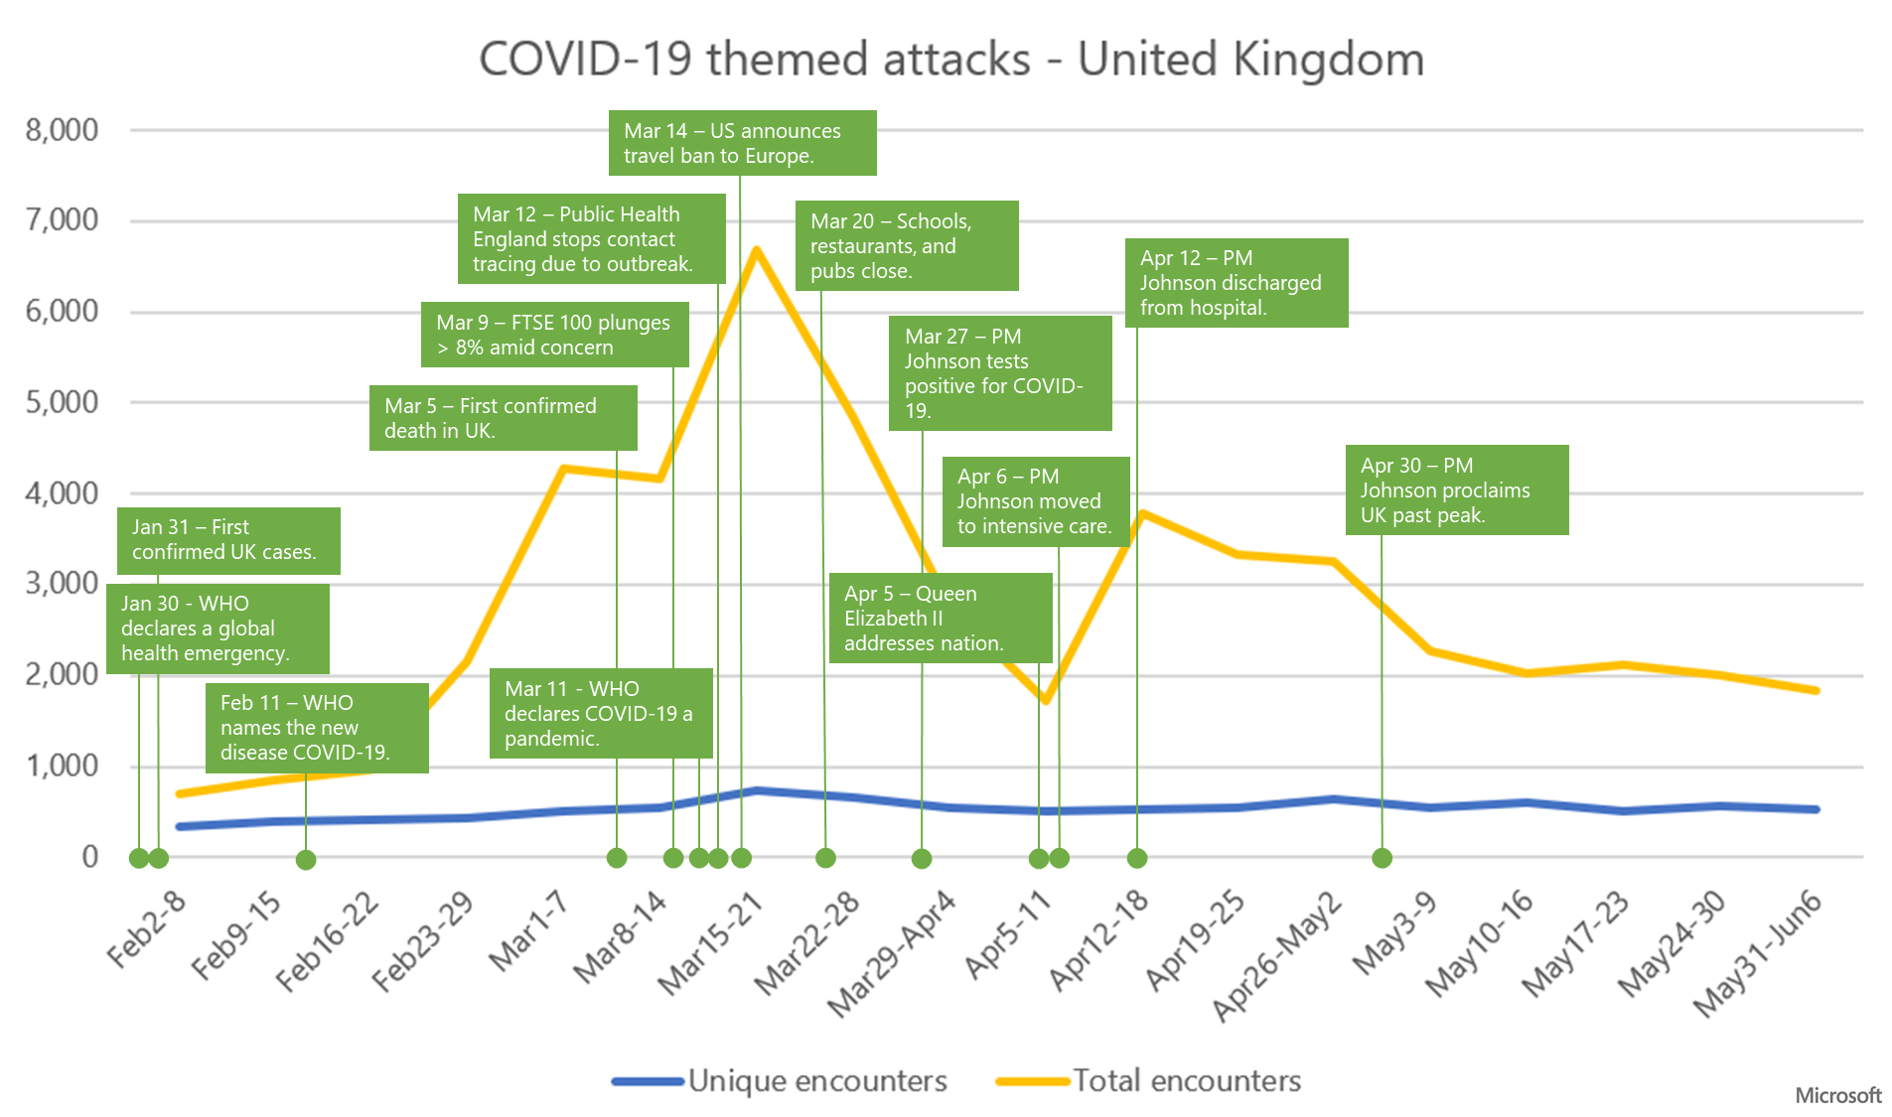 Graph showing trend of COVID-19 themed attacks and mapping key events during the outbreak in the UK